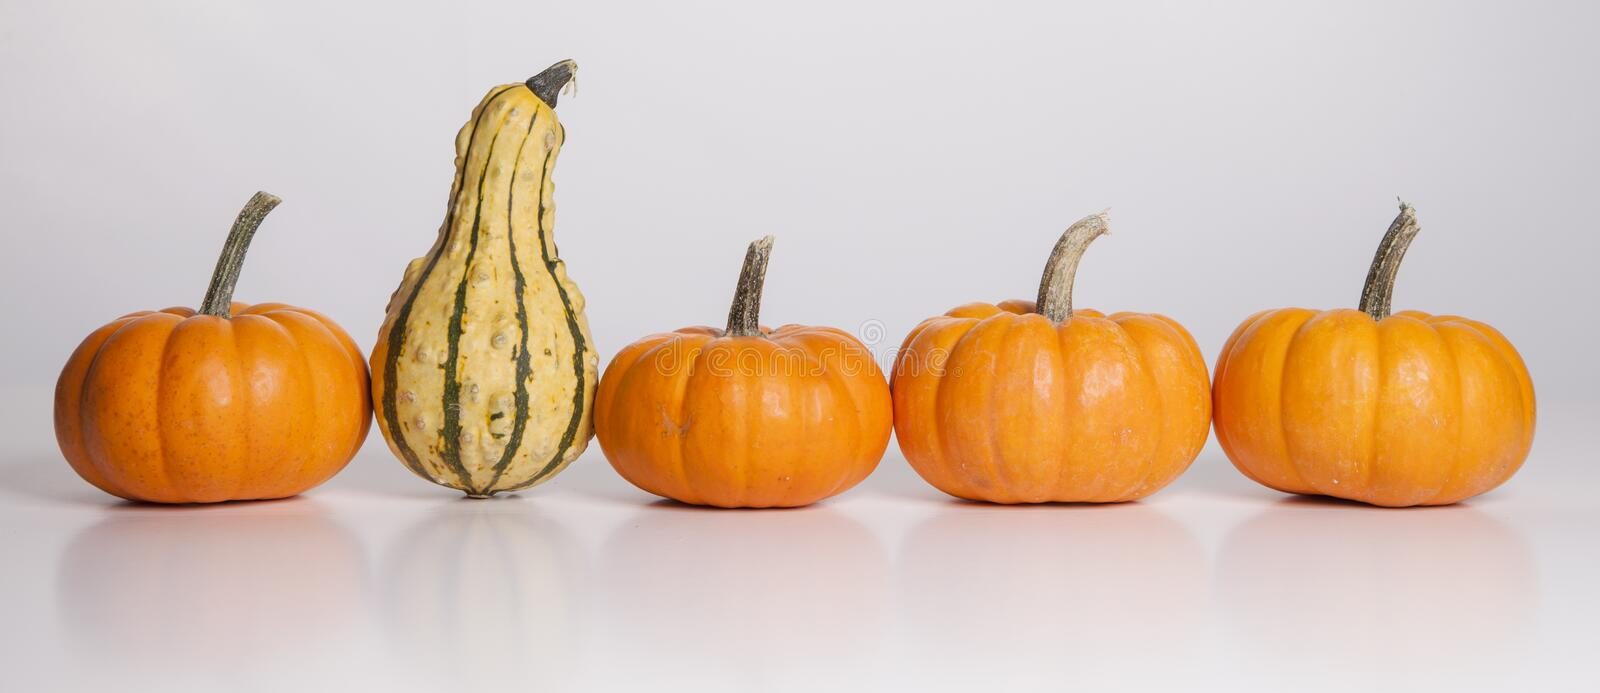 The Stand Out Gourd Royalty Free Stock Image